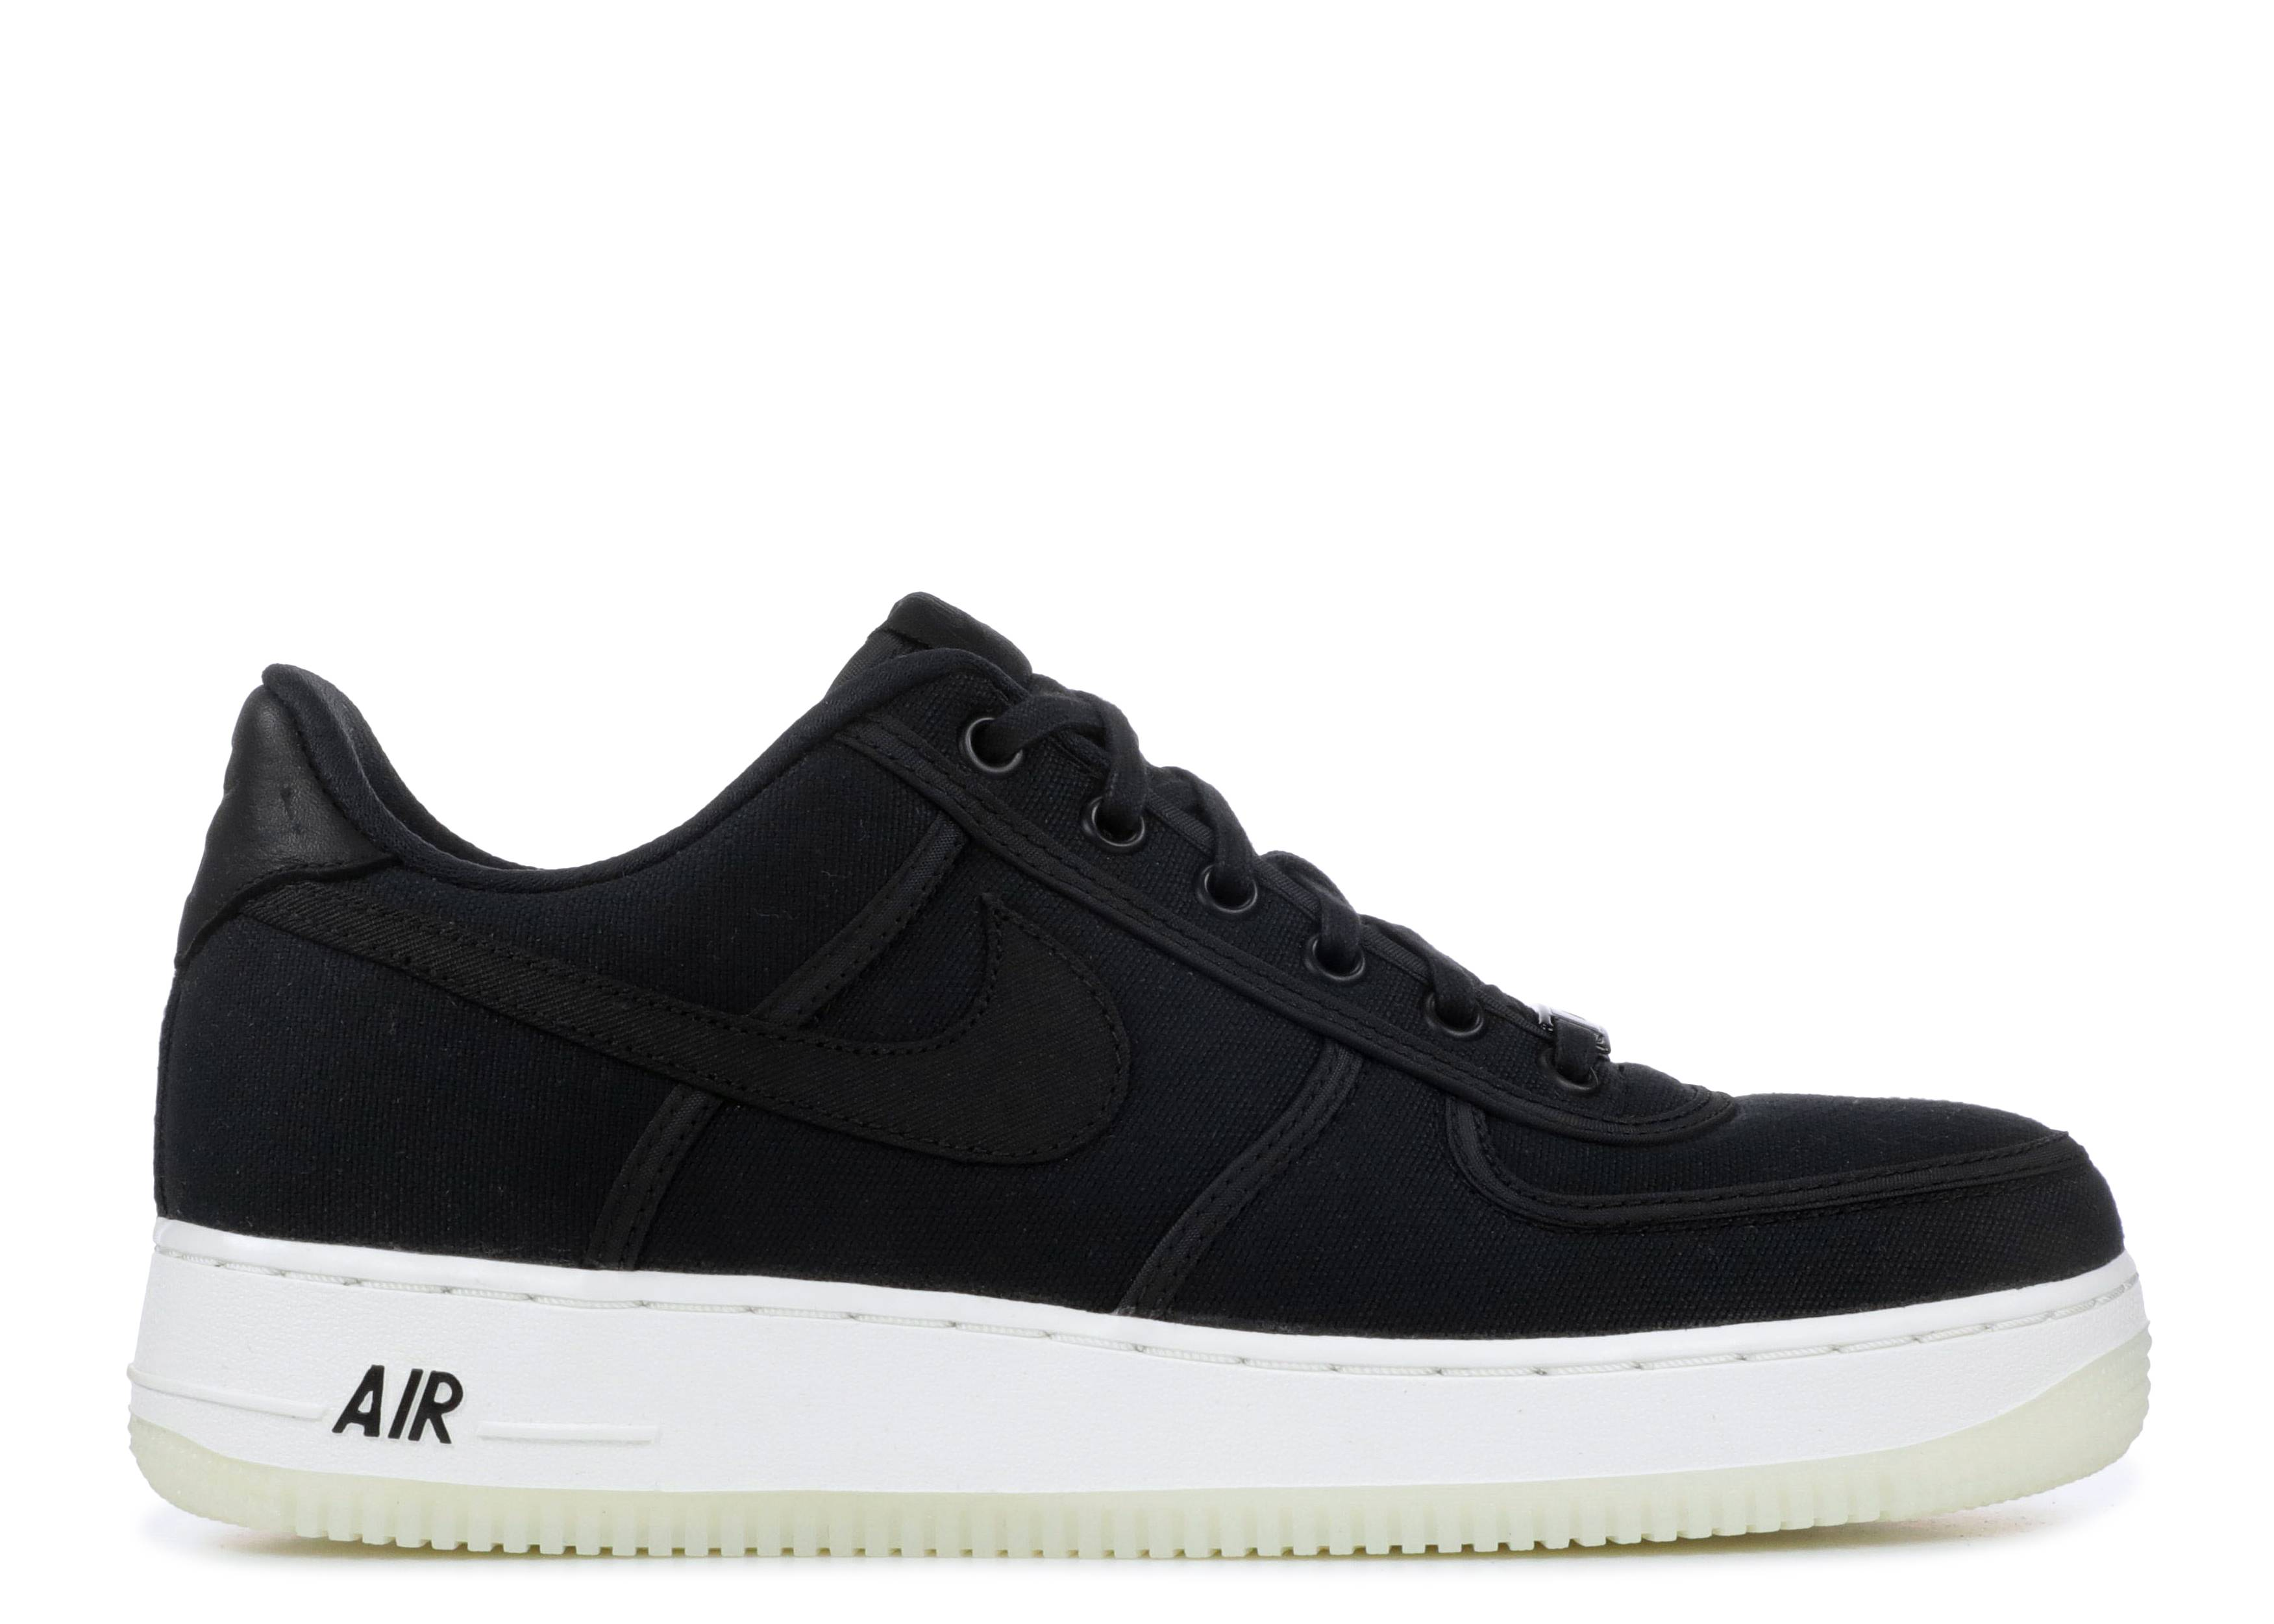 huge discount 9ffc7 ff325 nike. air force 1 low retro qs cnvs